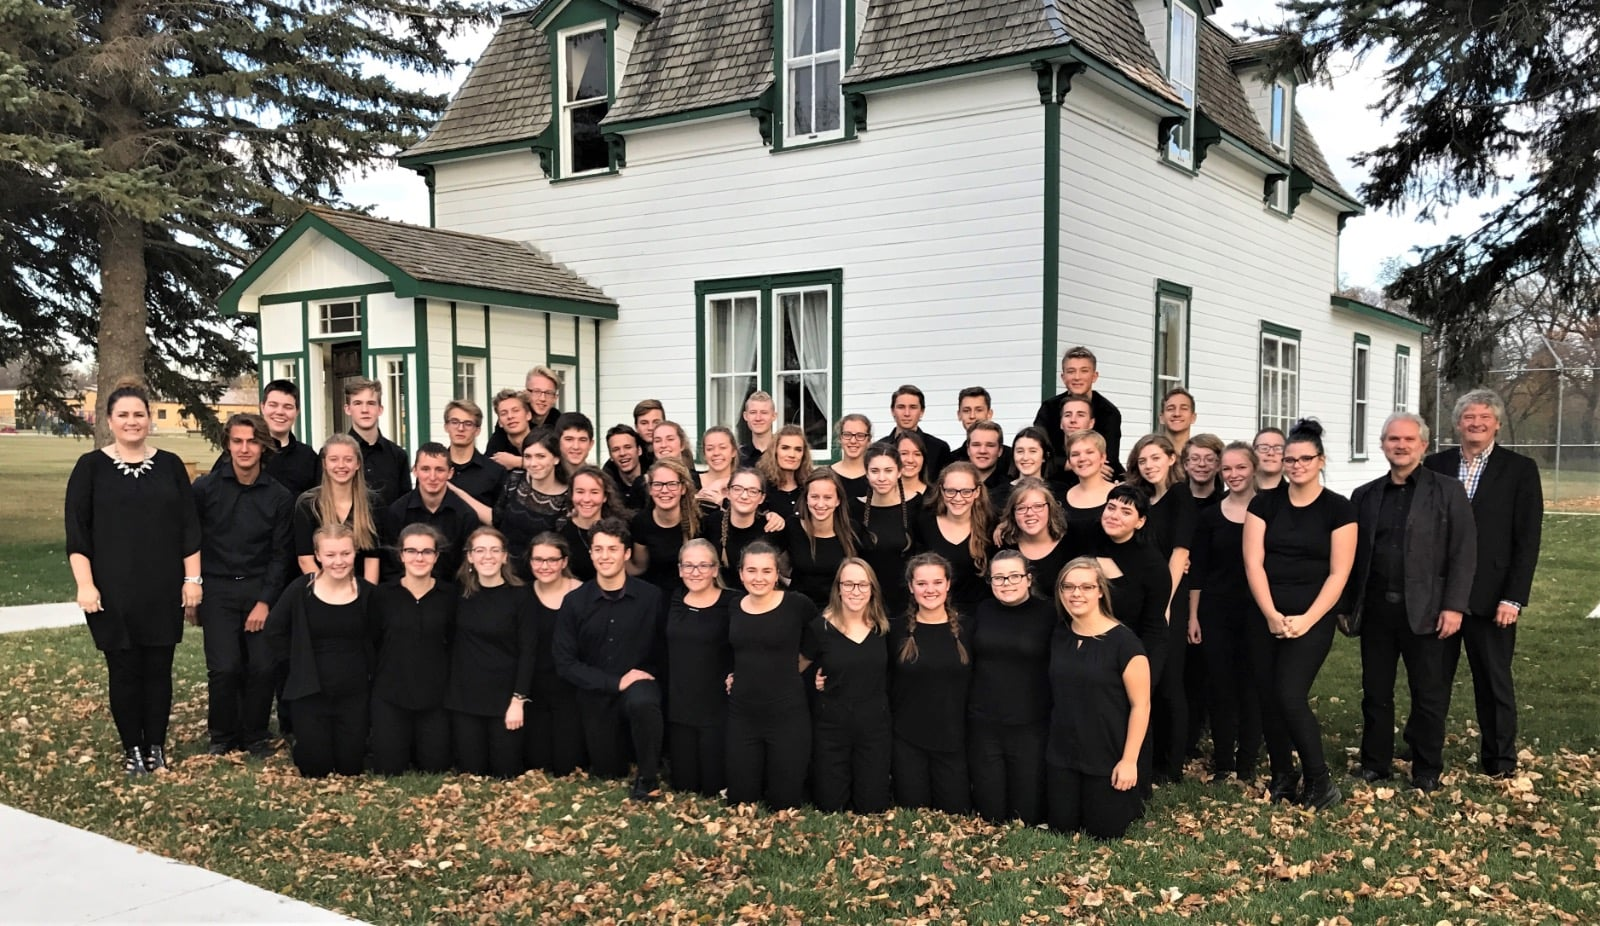 The Central Manitoba Youth Choir took time to visit in late 2017.